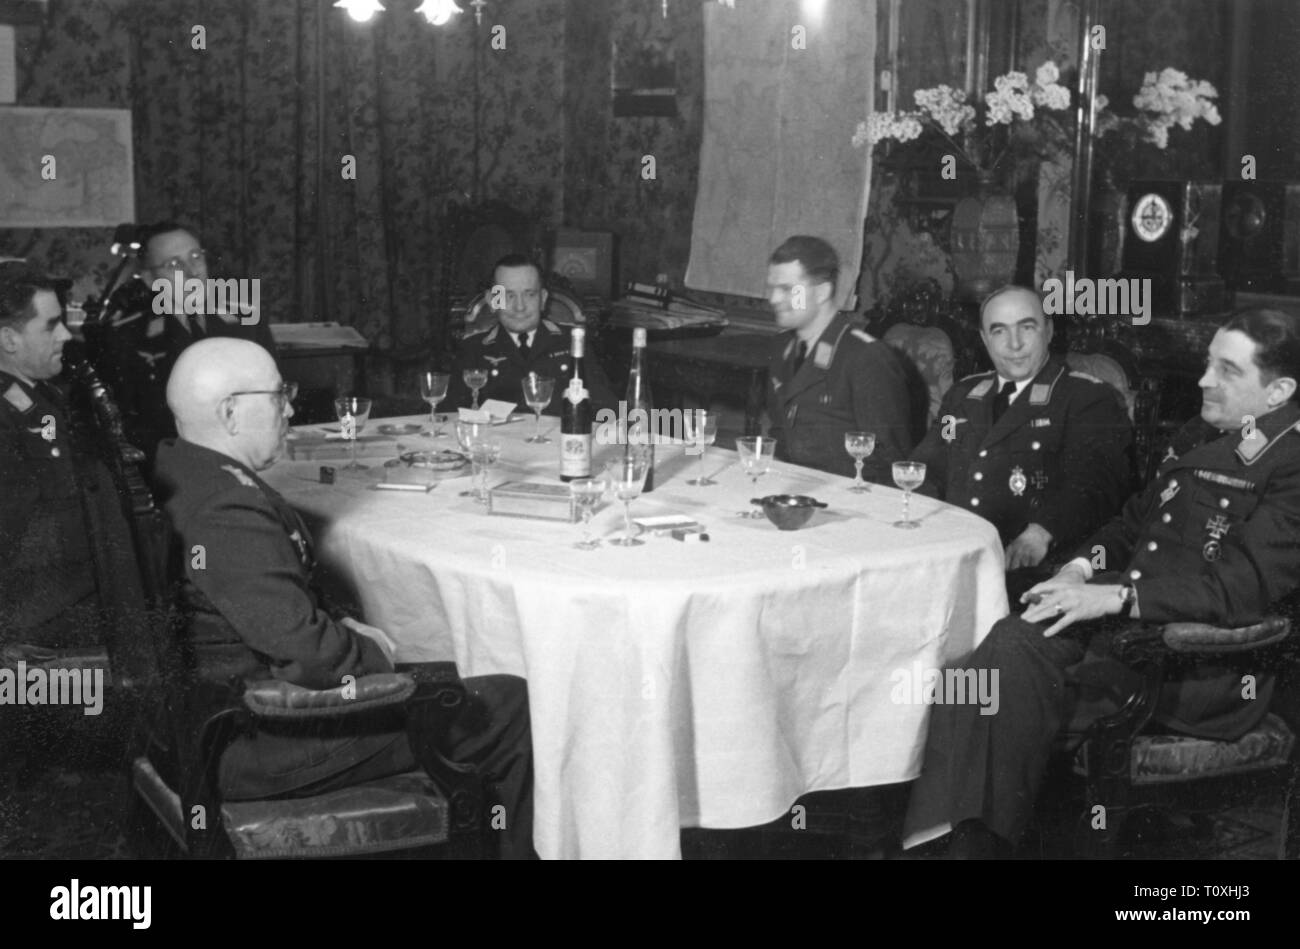 Second World War / WWII, communications zone, officers of the German Luftwaffe (German Air Force) at a birthday party, circa 1941, Additional-Rights-Clearance-Info-Not-Available - Stock Image